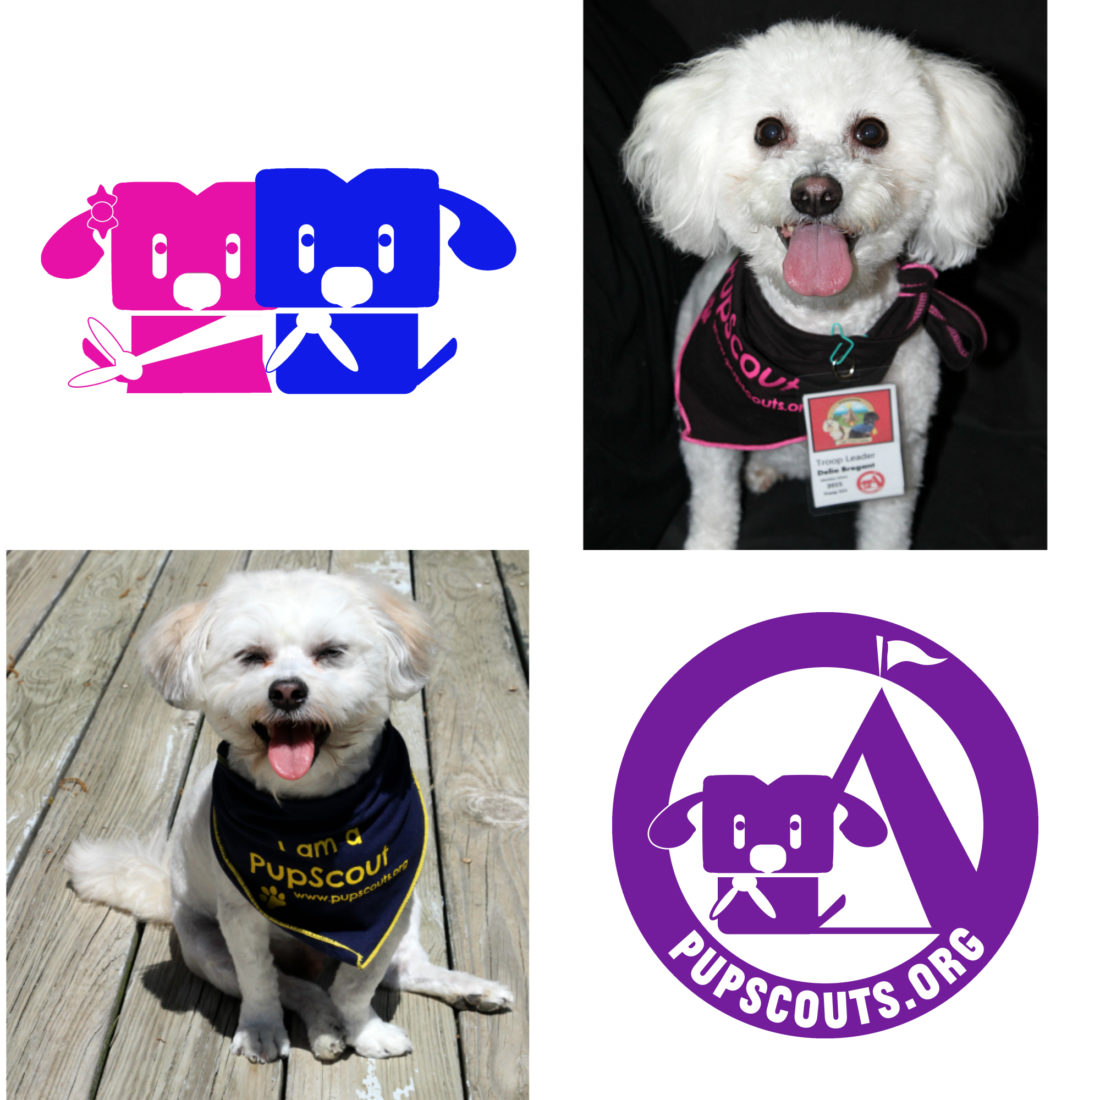 Introducing PupScouts Org Troop 314